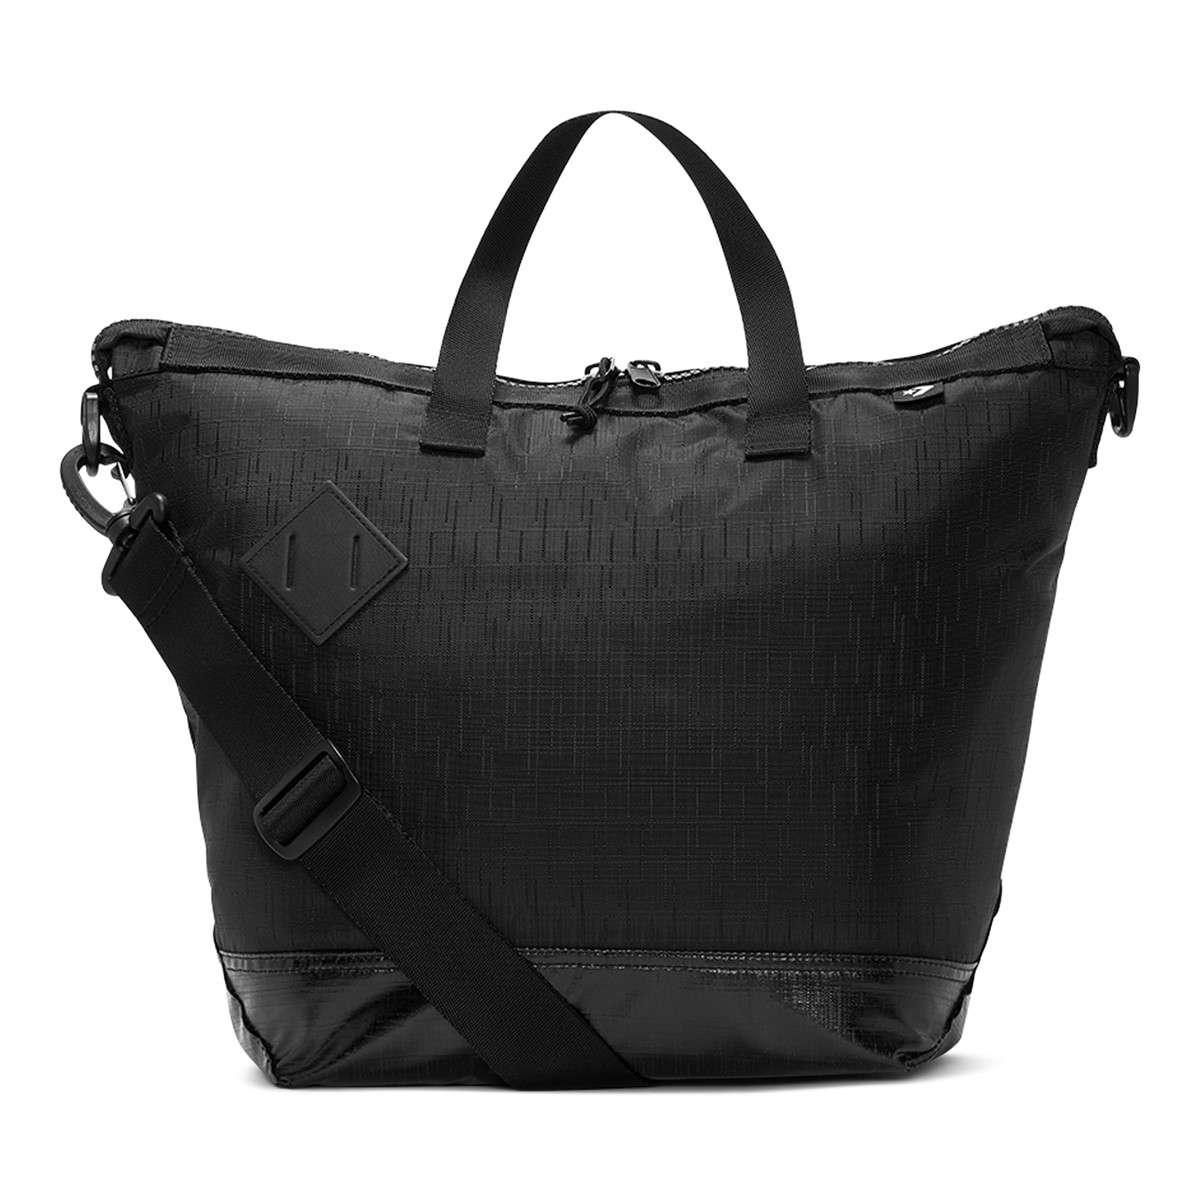 Street Tote Bag in Black